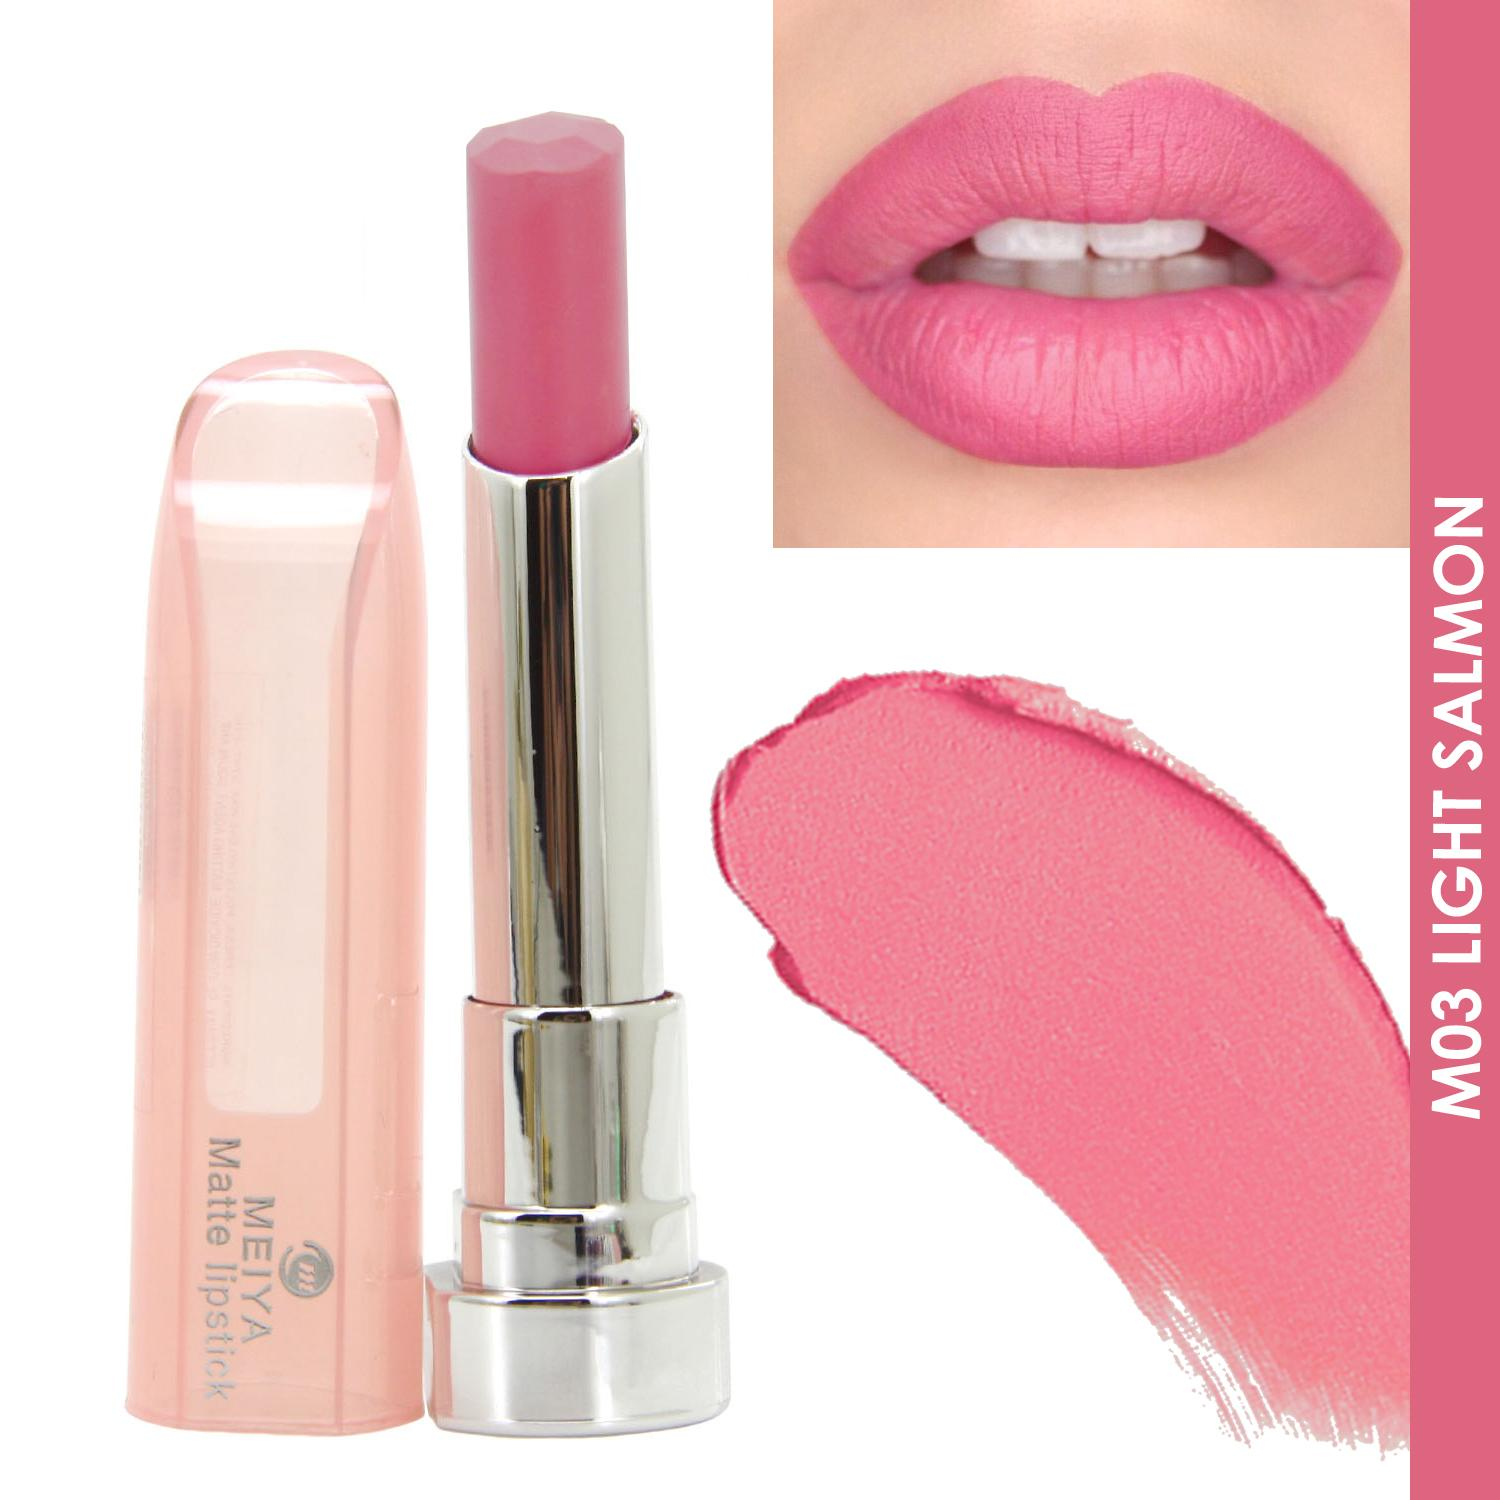 Lipstick Brands Lip Color On Sale Prices Set Reviews In Baby Lipstik Philippines